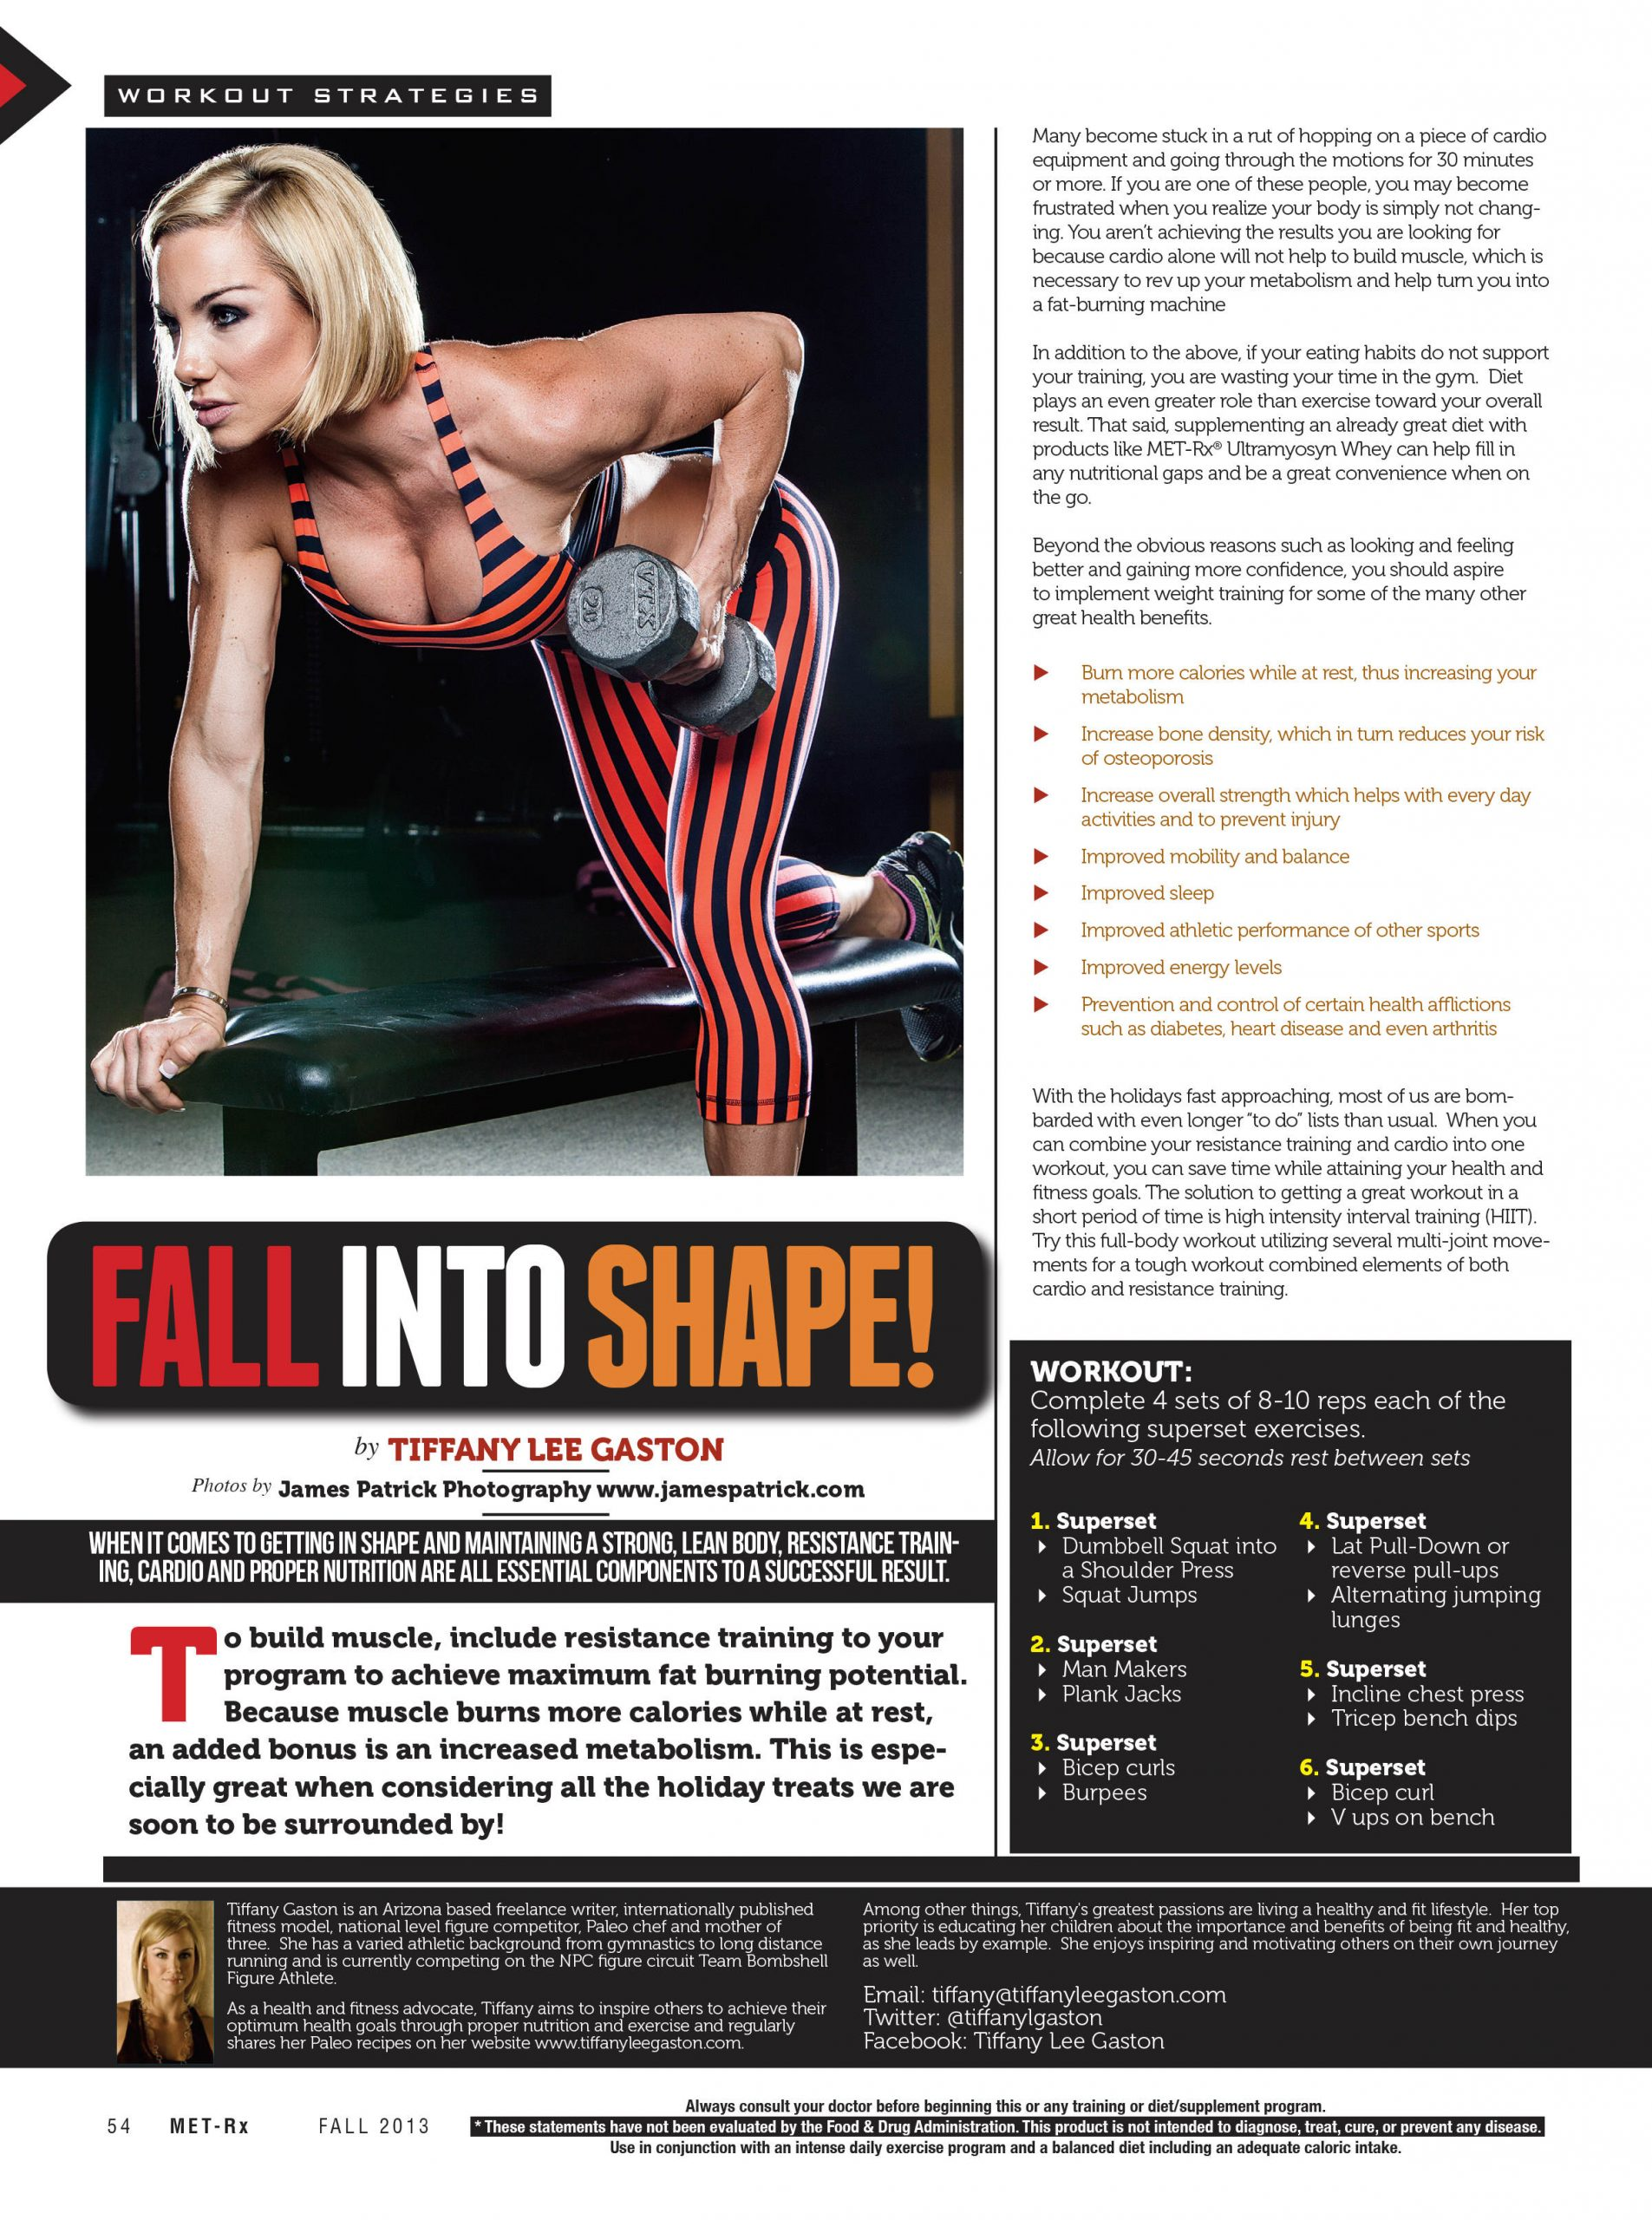 Fall Into Shape!